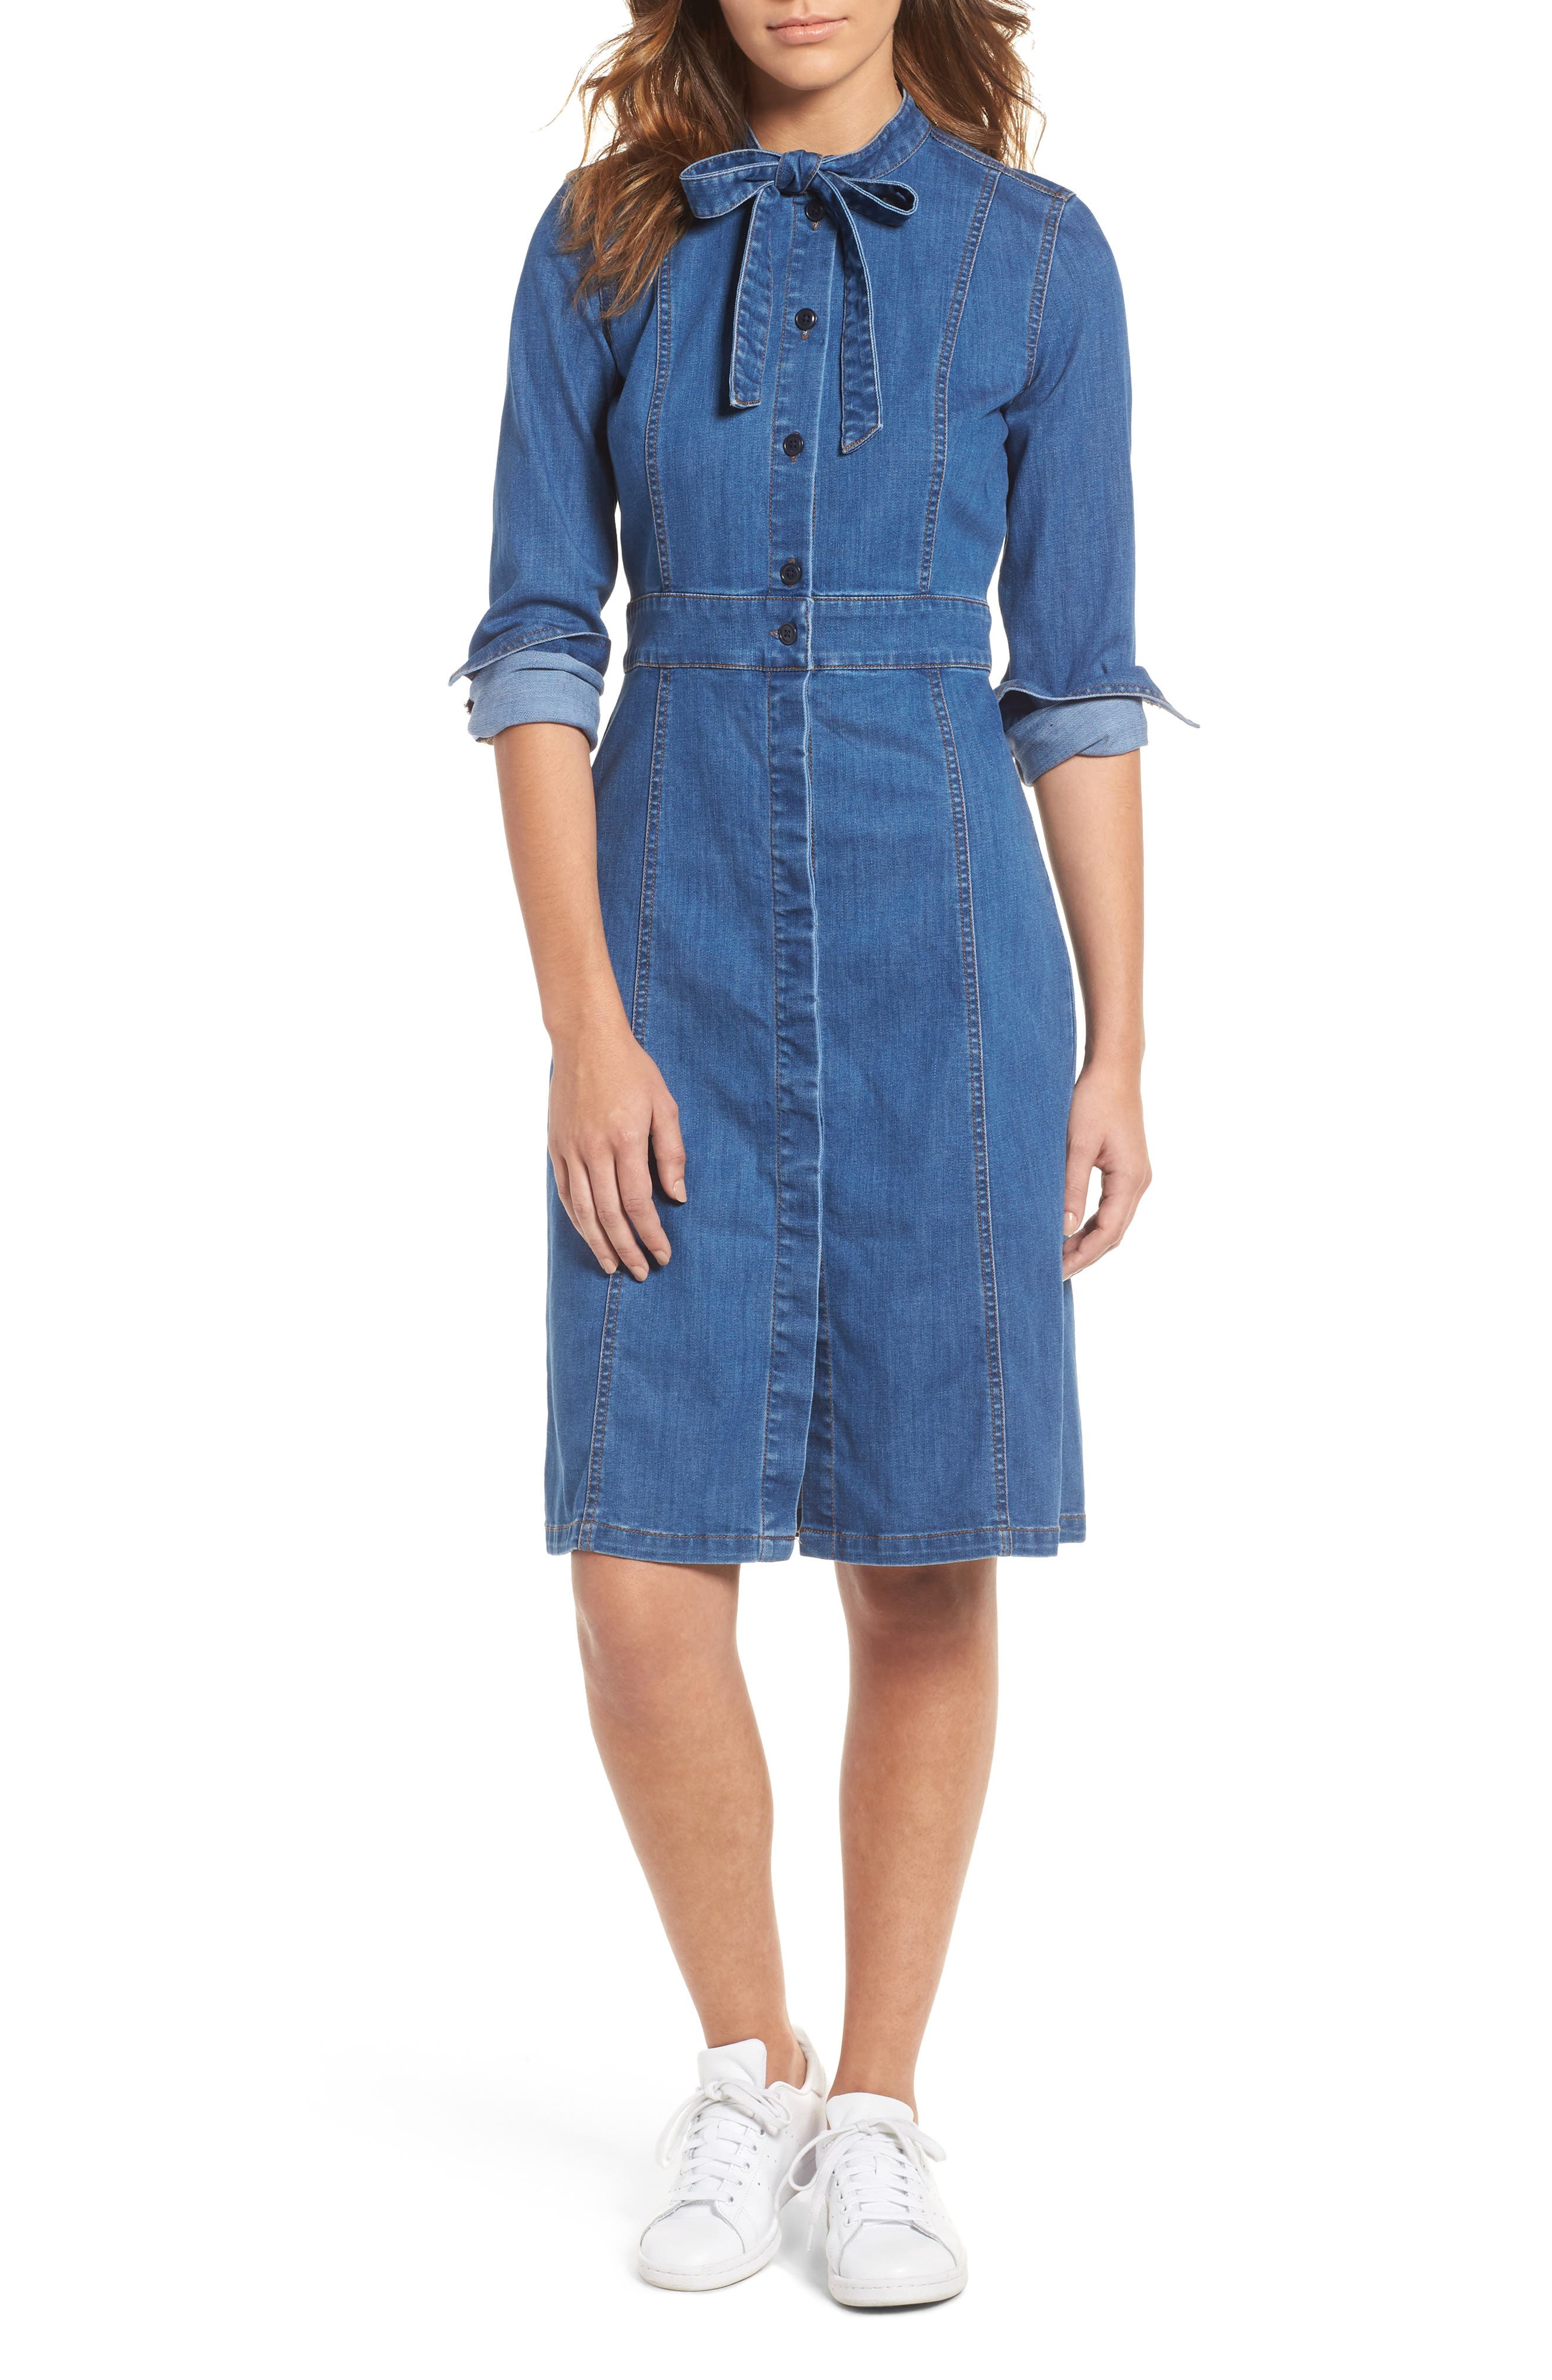 MADEWELL, Denim Tie Neck Shirtdress, Main thumbnail 1, color, 400